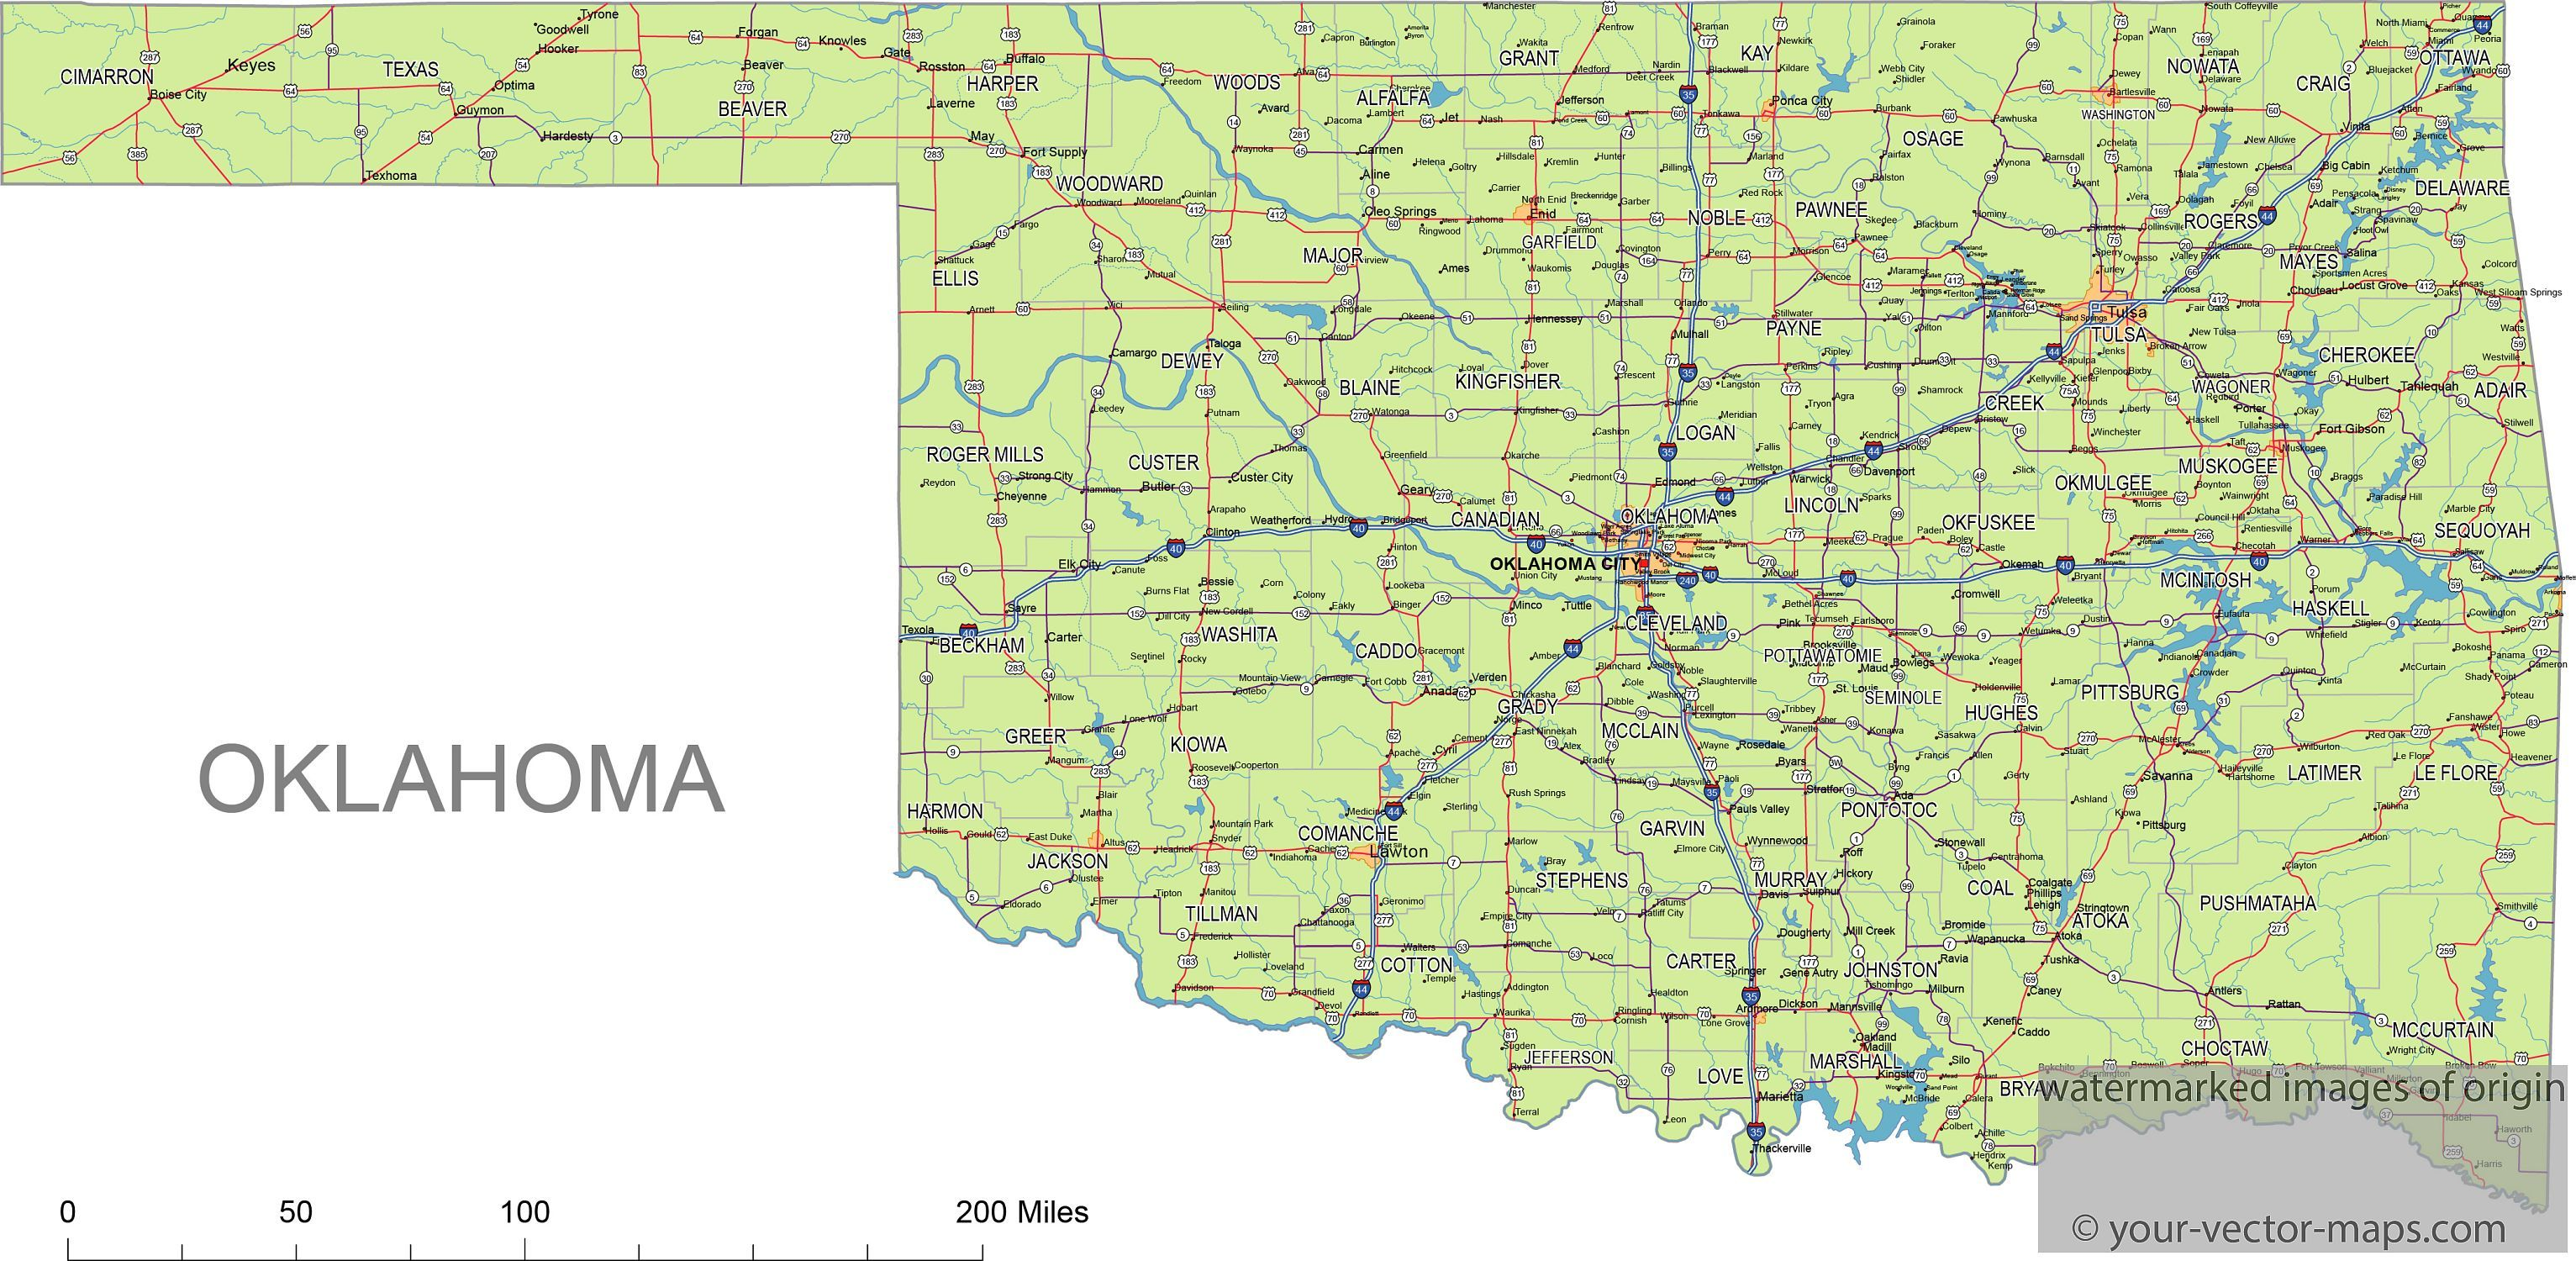 Oklahoma state route network map Oklahoma highways map Cities of